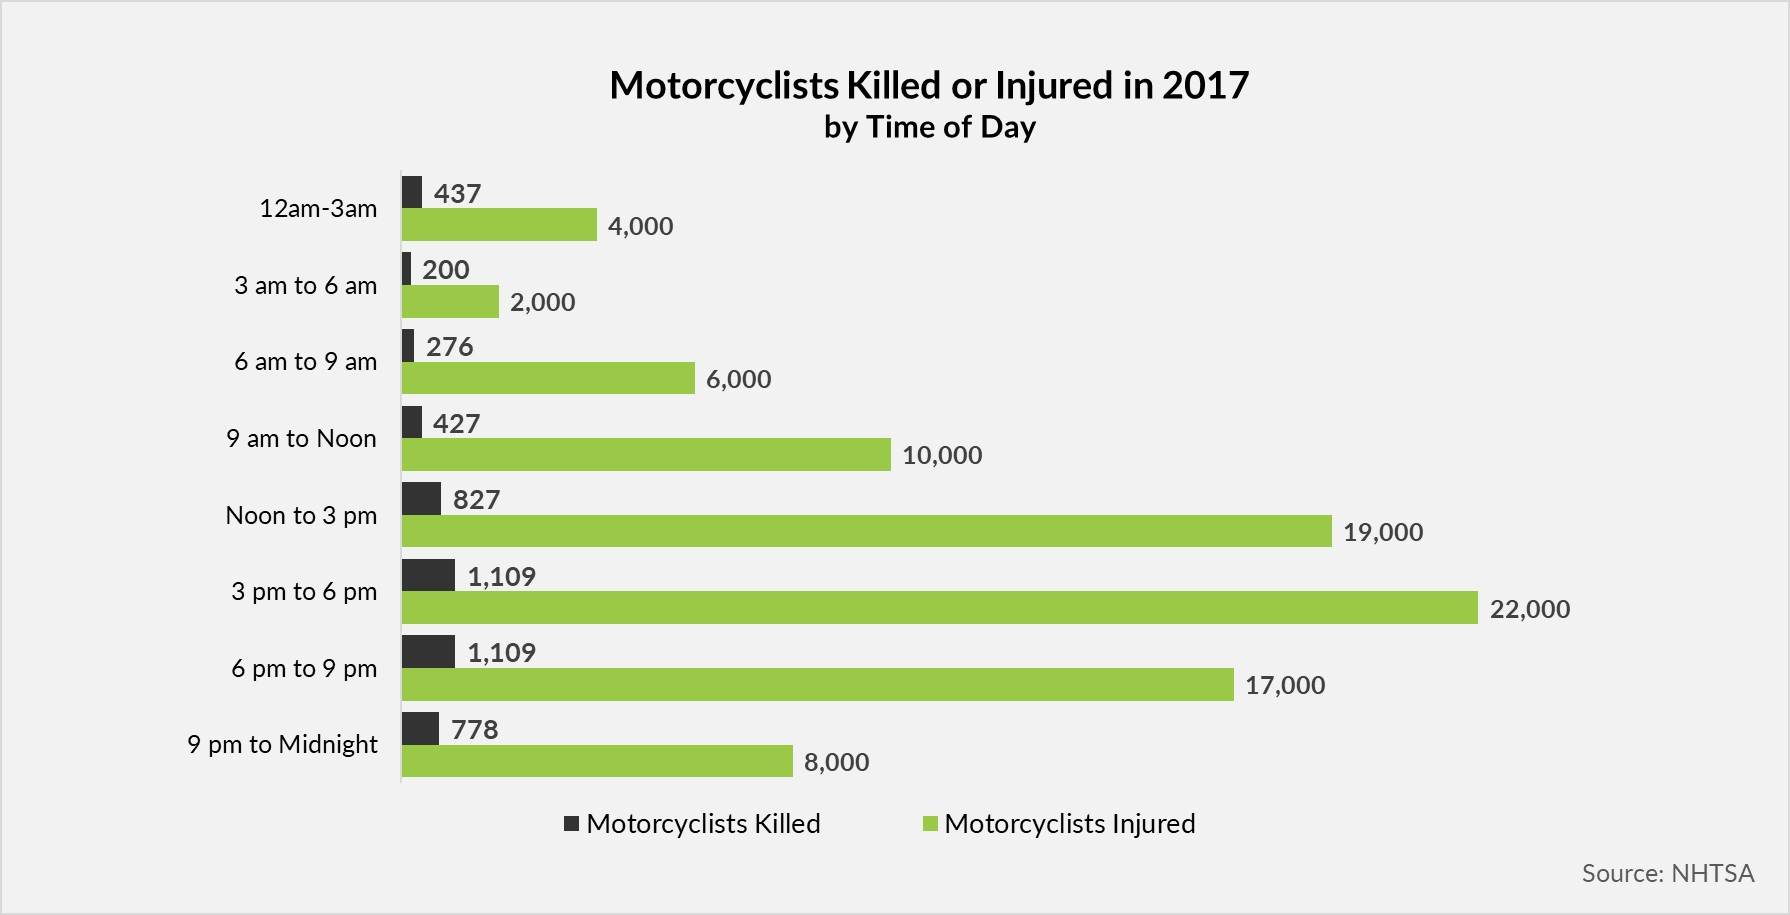 Motorcyclists Killed or Injured by Time of Day